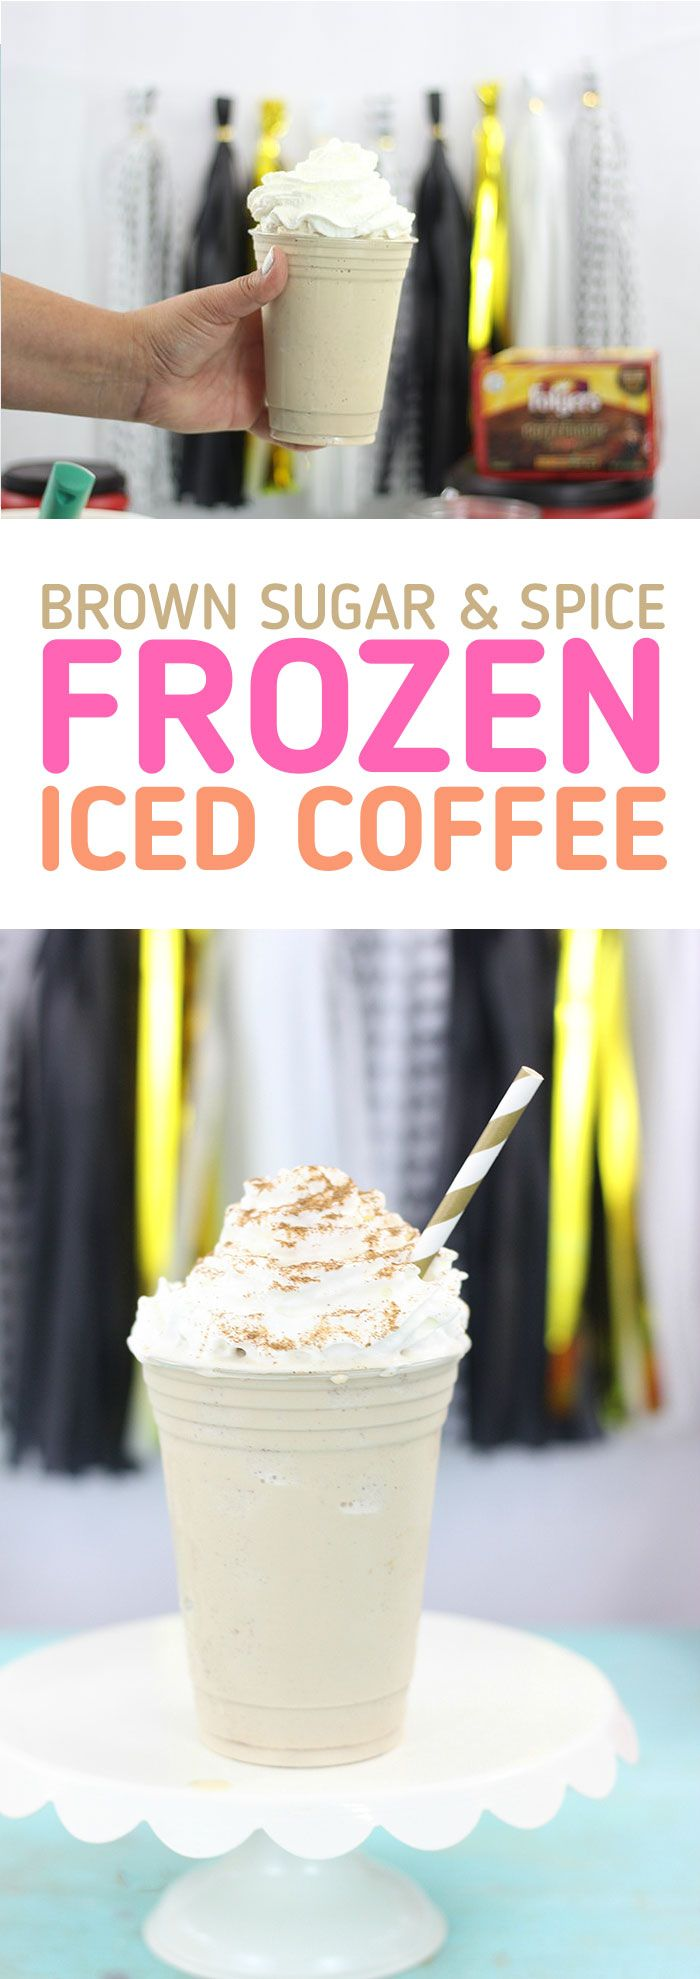 Frozen Iced Coffee with Brown Sugar and Spice. SO good for a refreshing treat. via @dawnchats